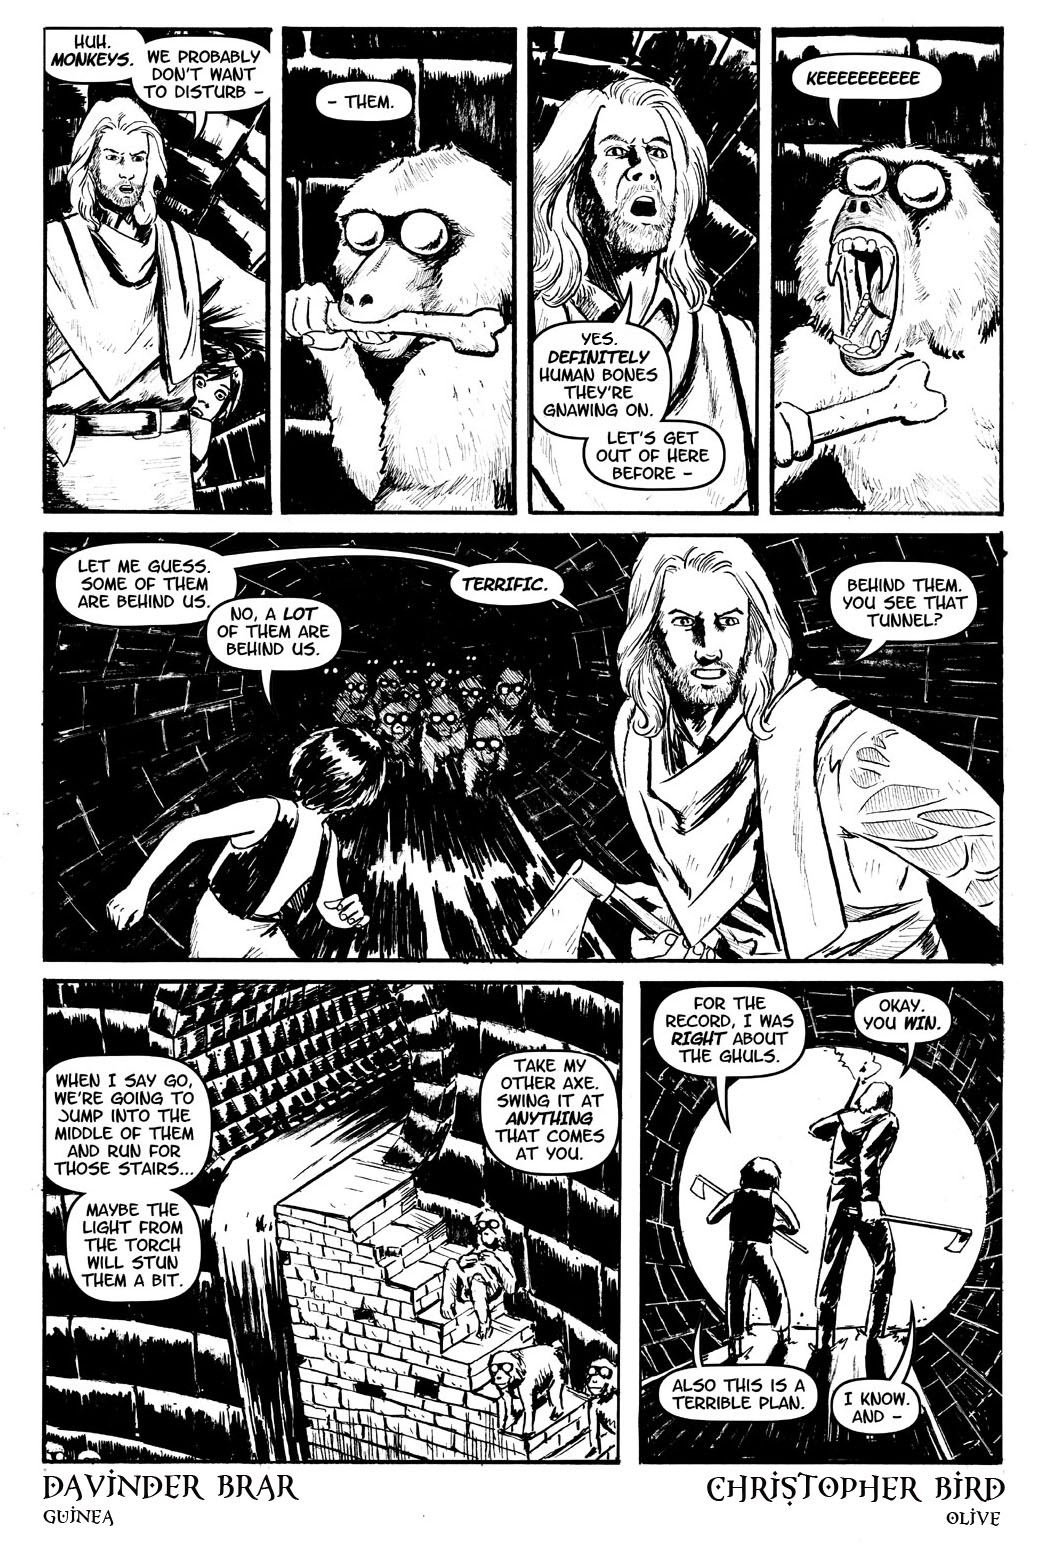 Book 4, page 17